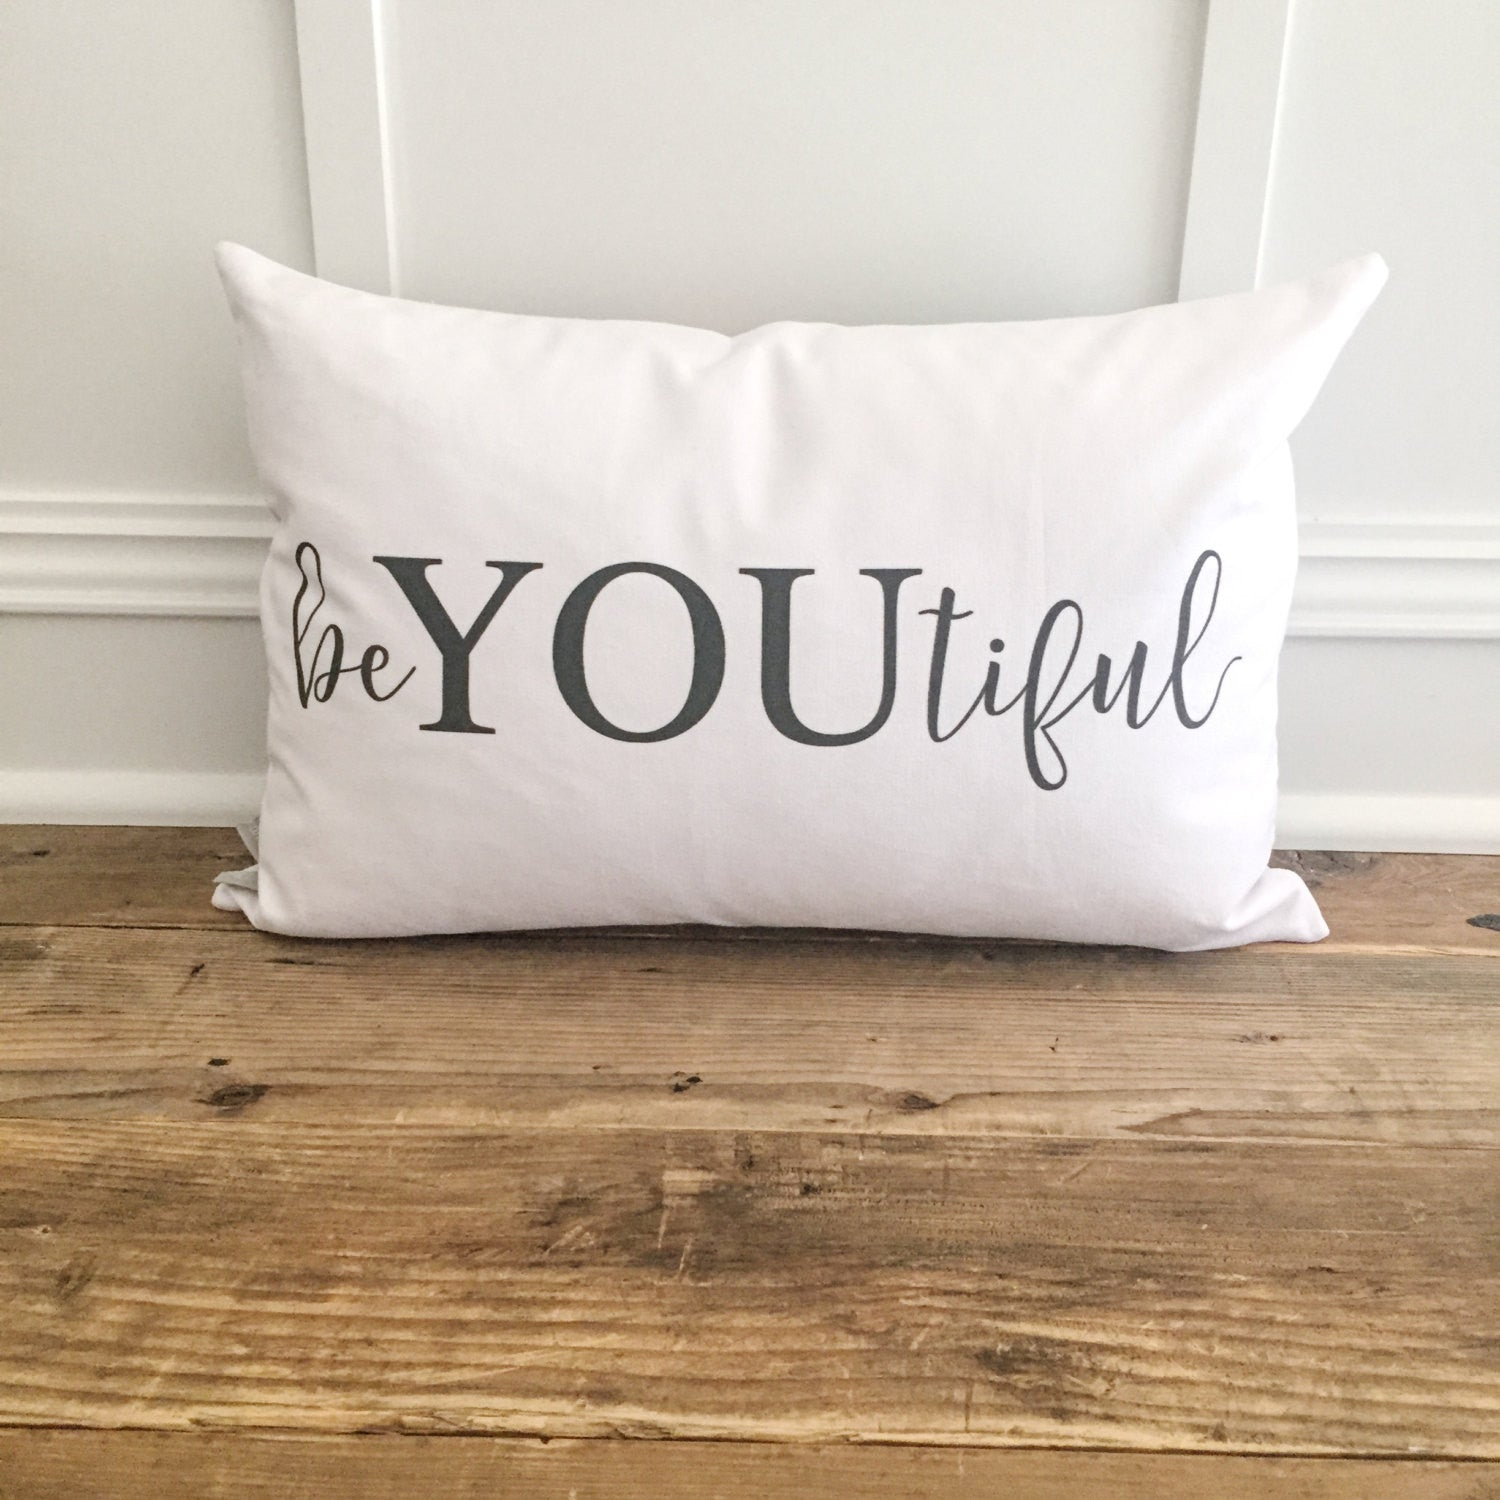 beYOUtiful Pillow Cover - Linen and Ivory